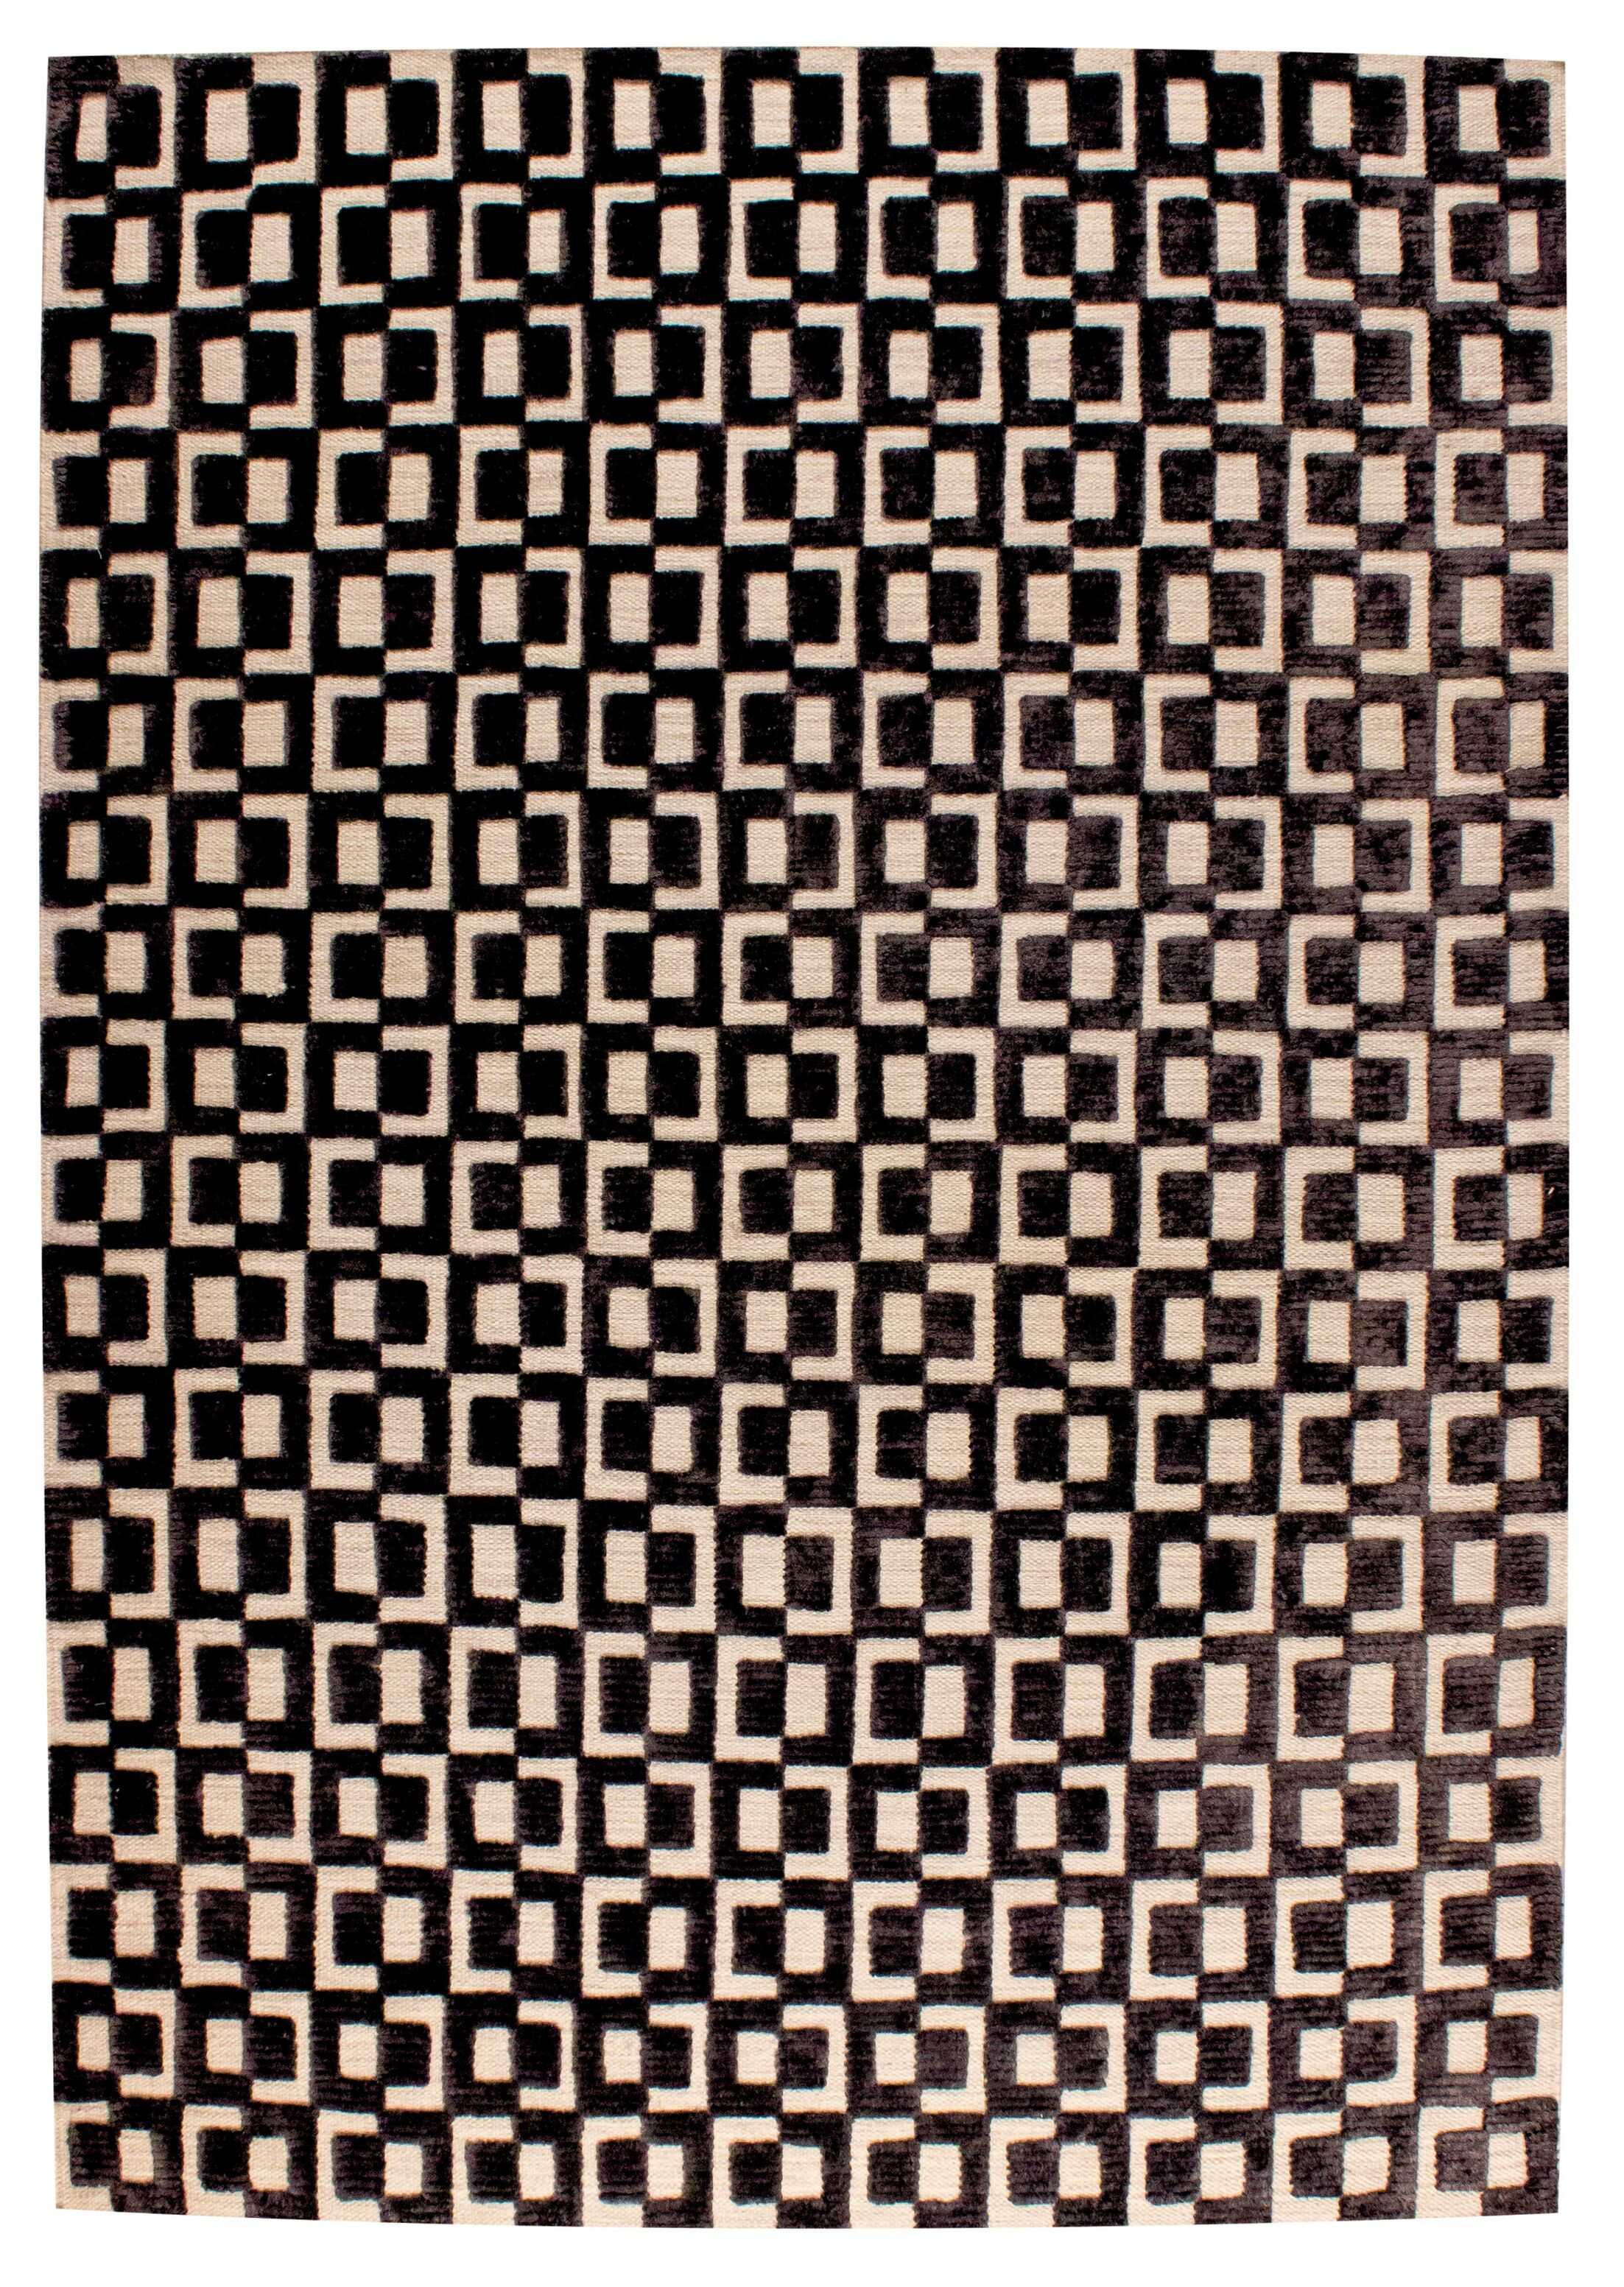 Yonkers Hand-Woven Gray/Brown Area Rug Rug Size: 4' x 6'